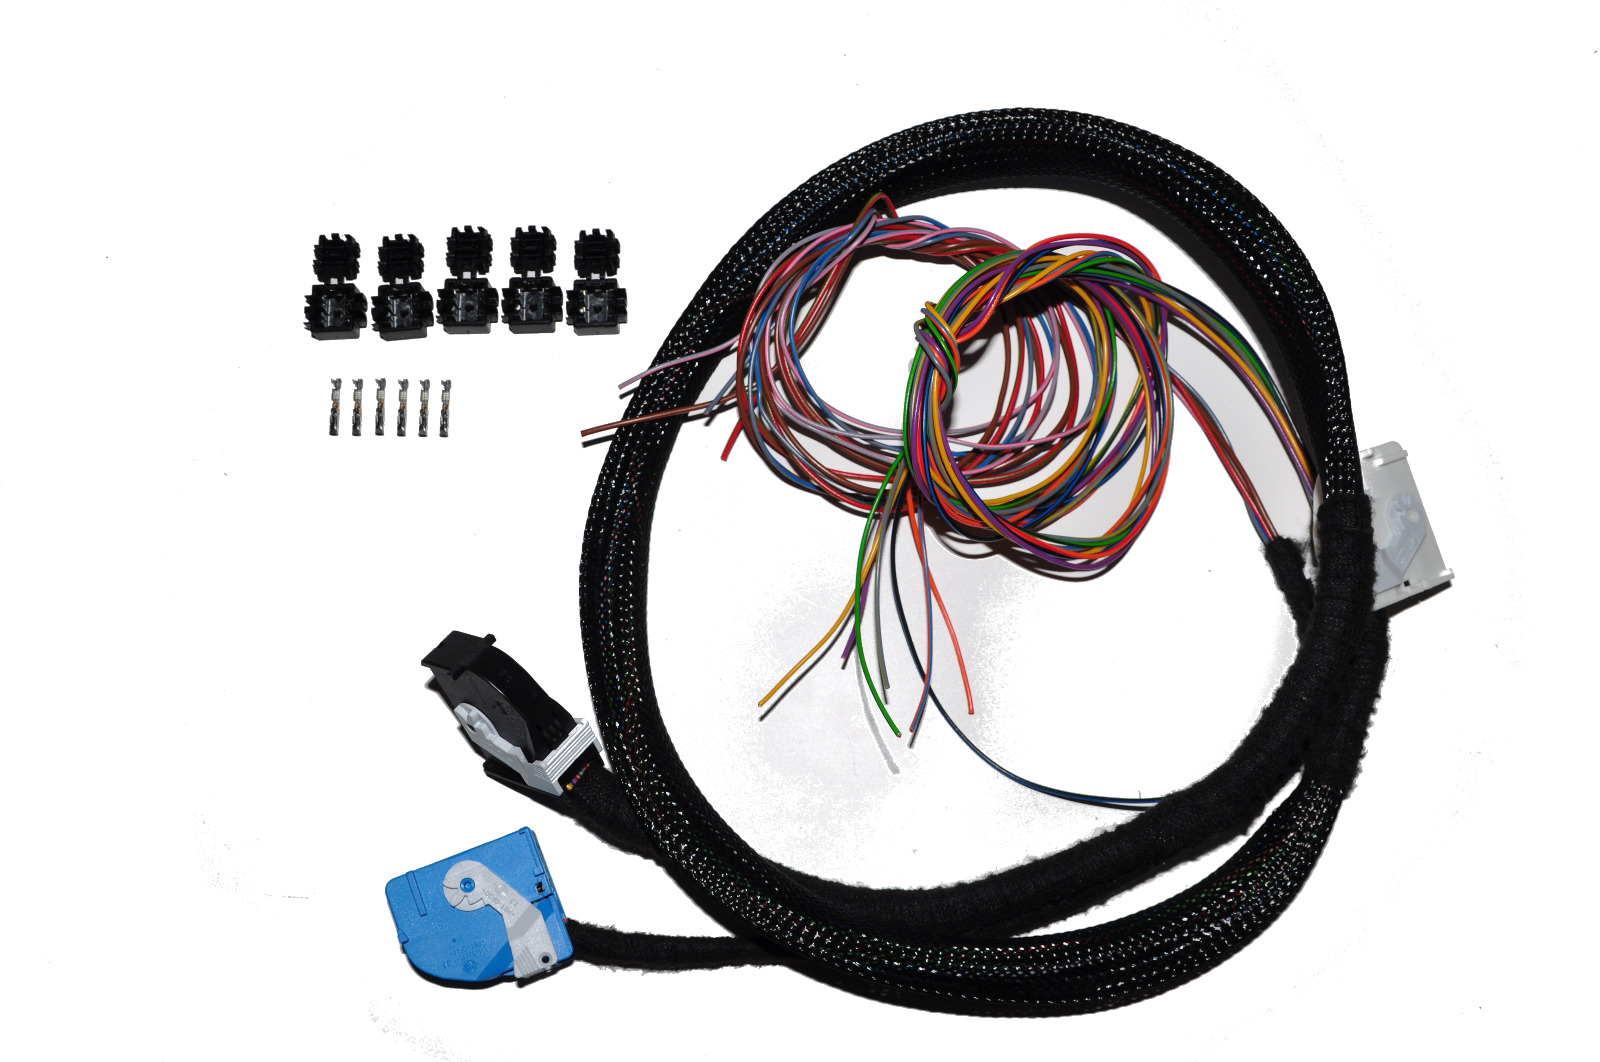 Retrofit Wiring Kit Kabelbaum Fr Porsche 911 996 986 Navigation Pcm Seat Diagram 1 Of See More